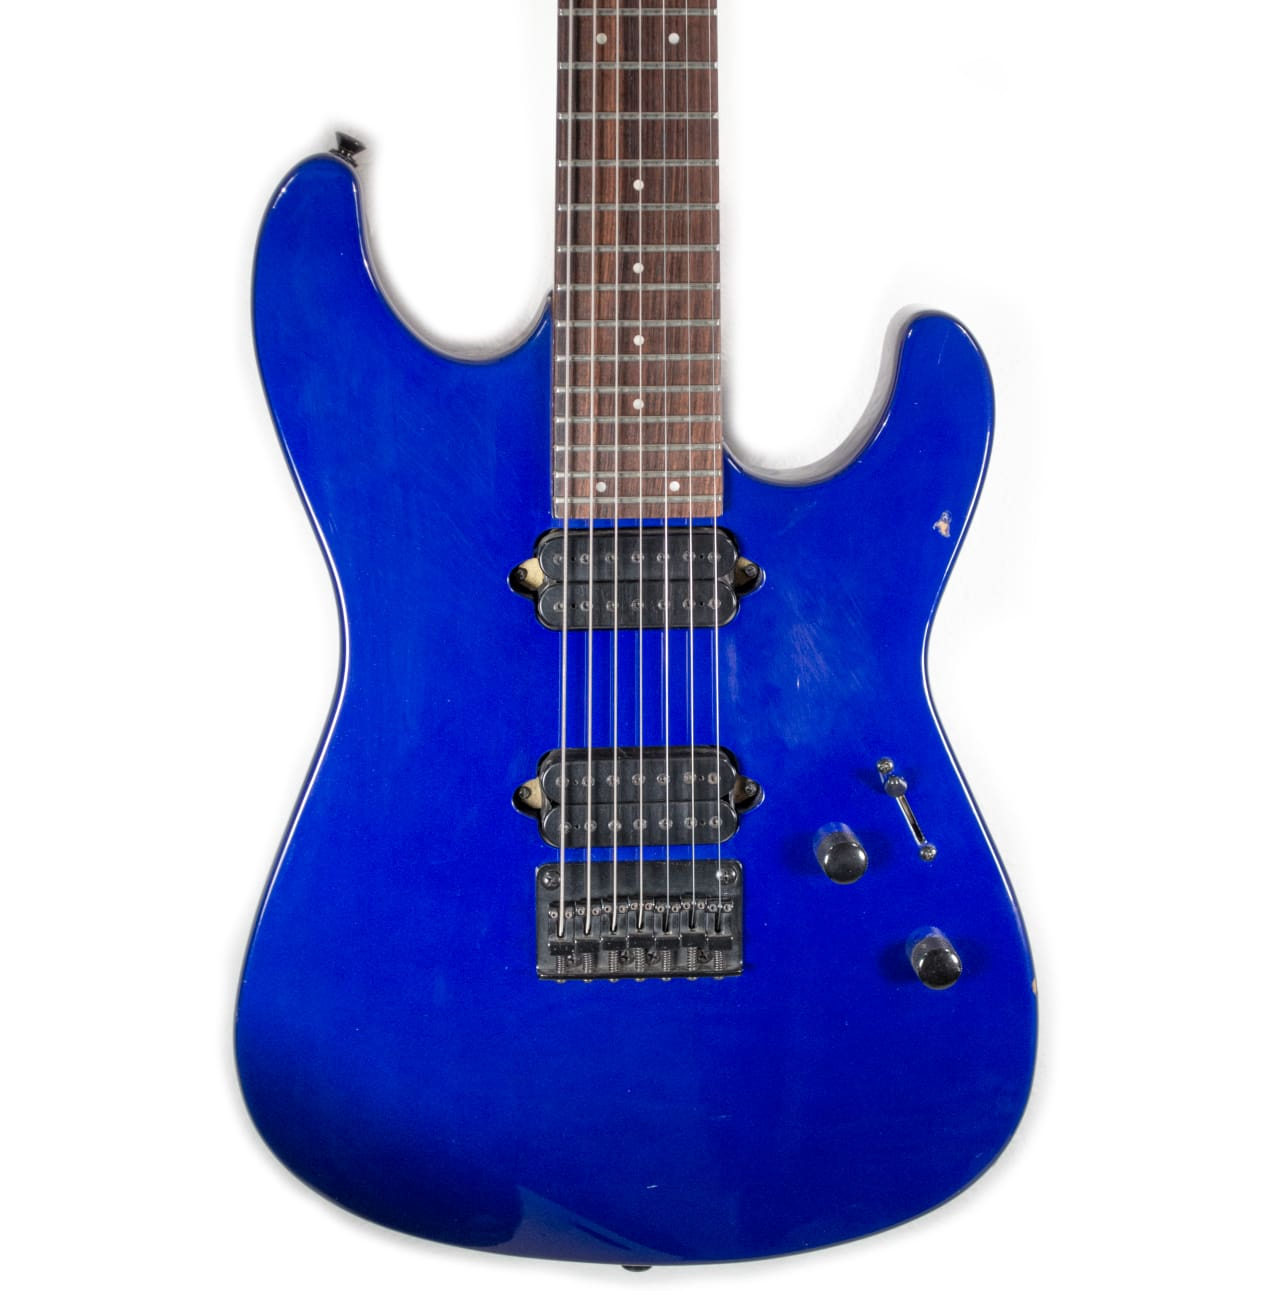 Big Lots Financing >> 2000 Squier Stagemaster-7 (Cobalt Blue Metallic) | Reverb